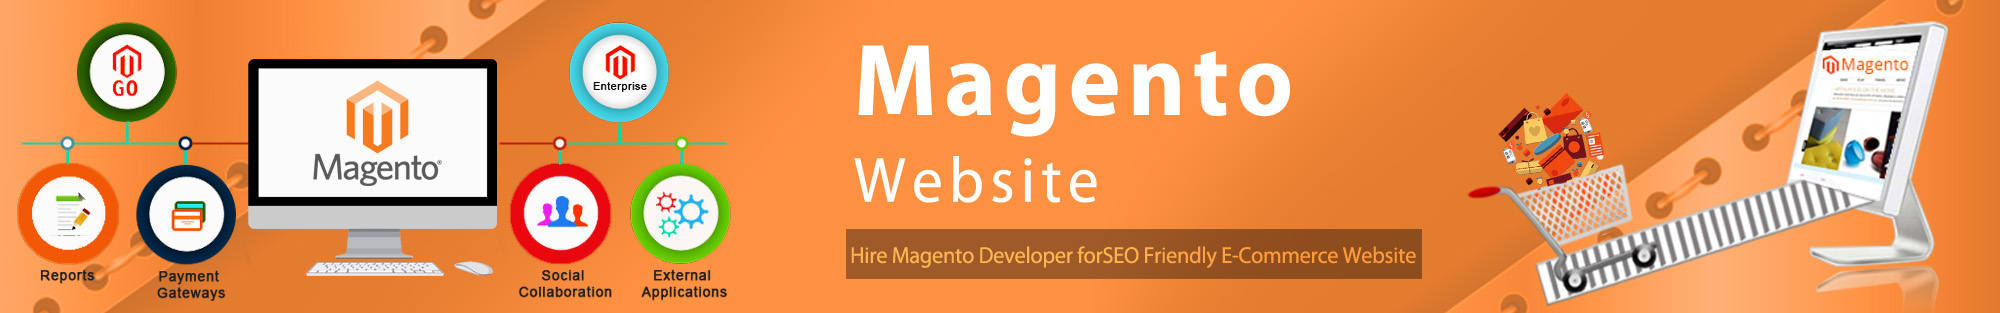 Magento website Development service in Mumbai india